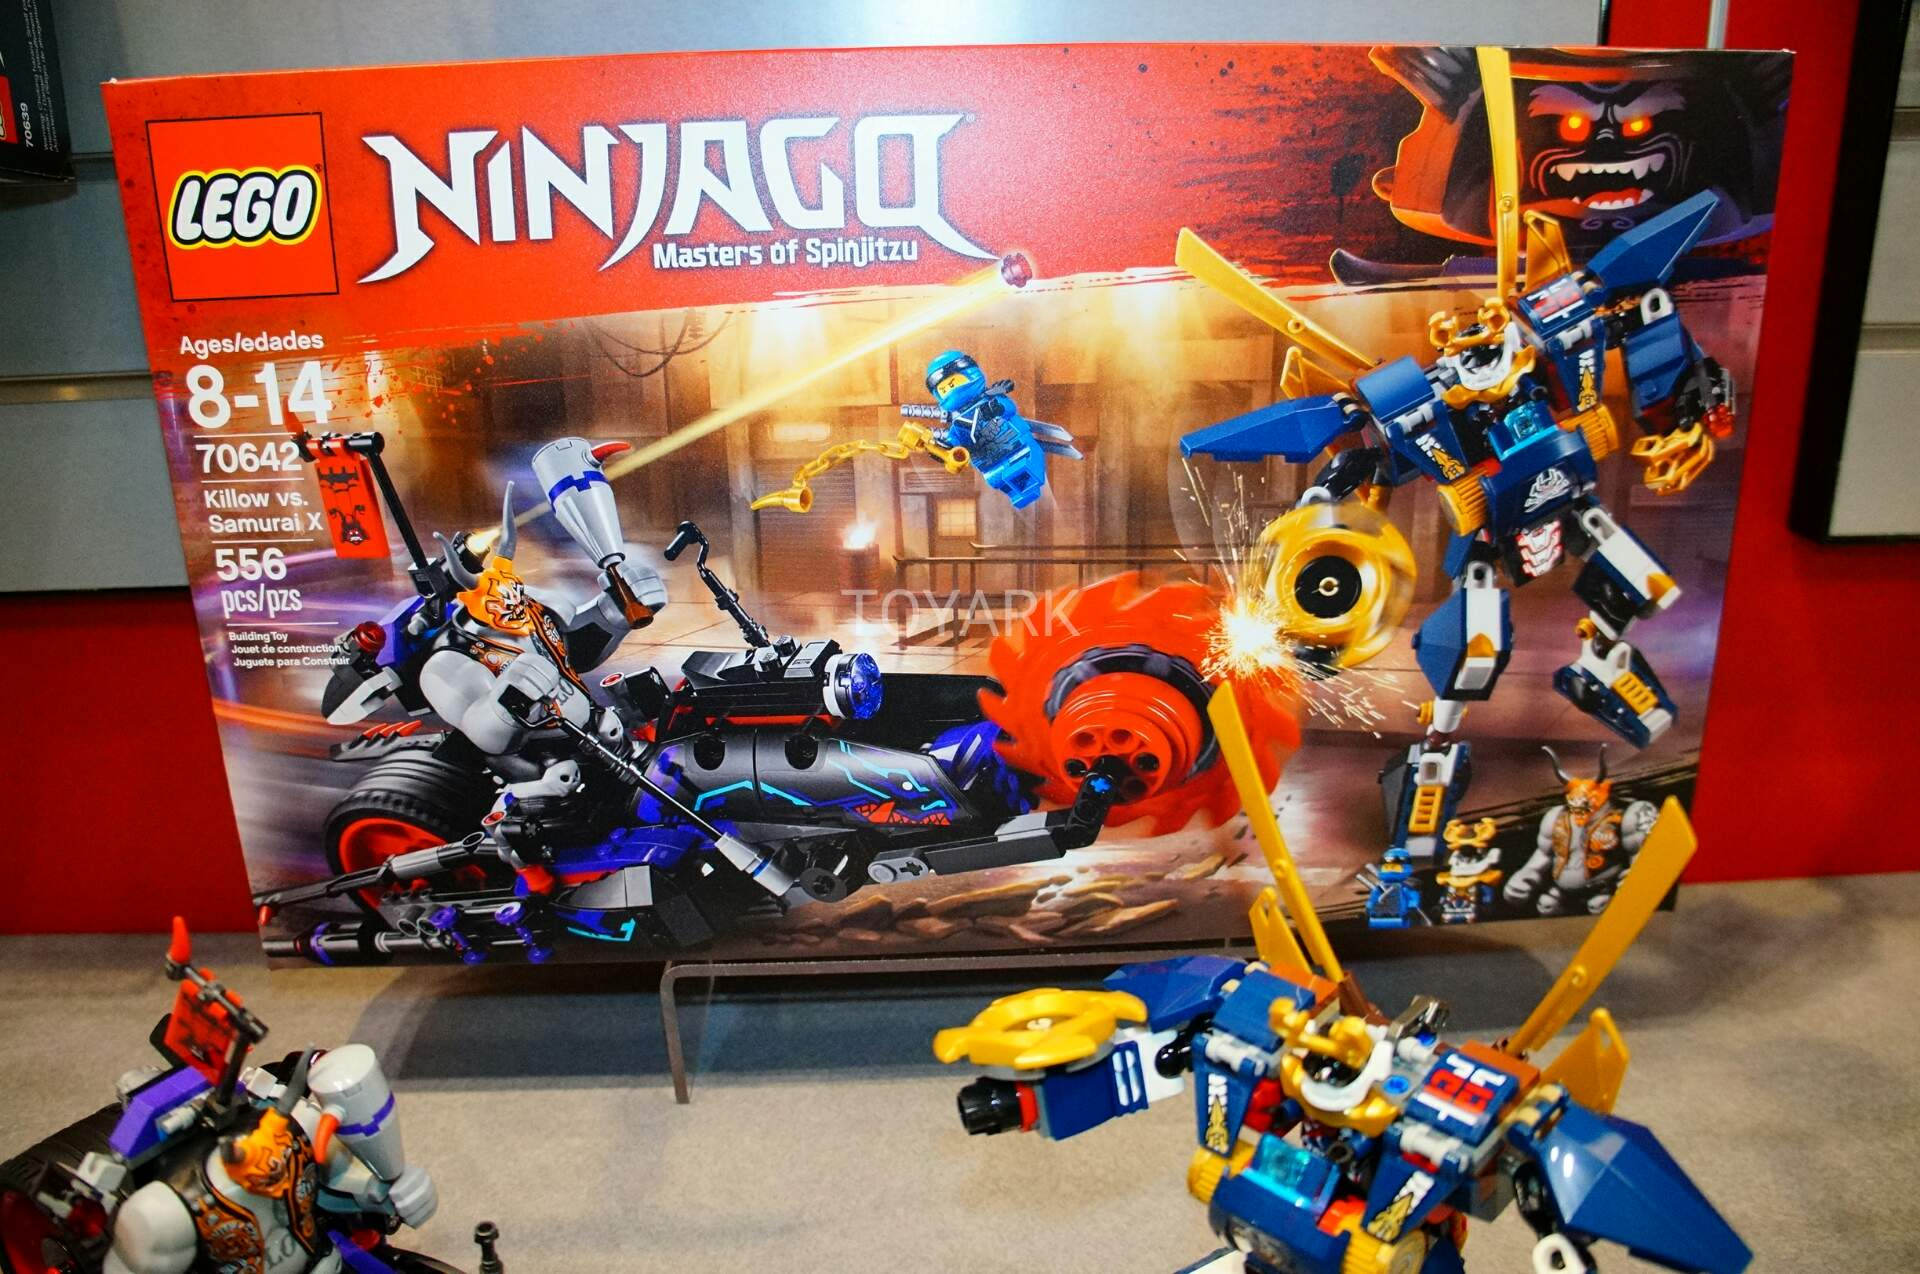 Toy Fair 2018 Gallery - LEGO Ninjago - The Toyark - News